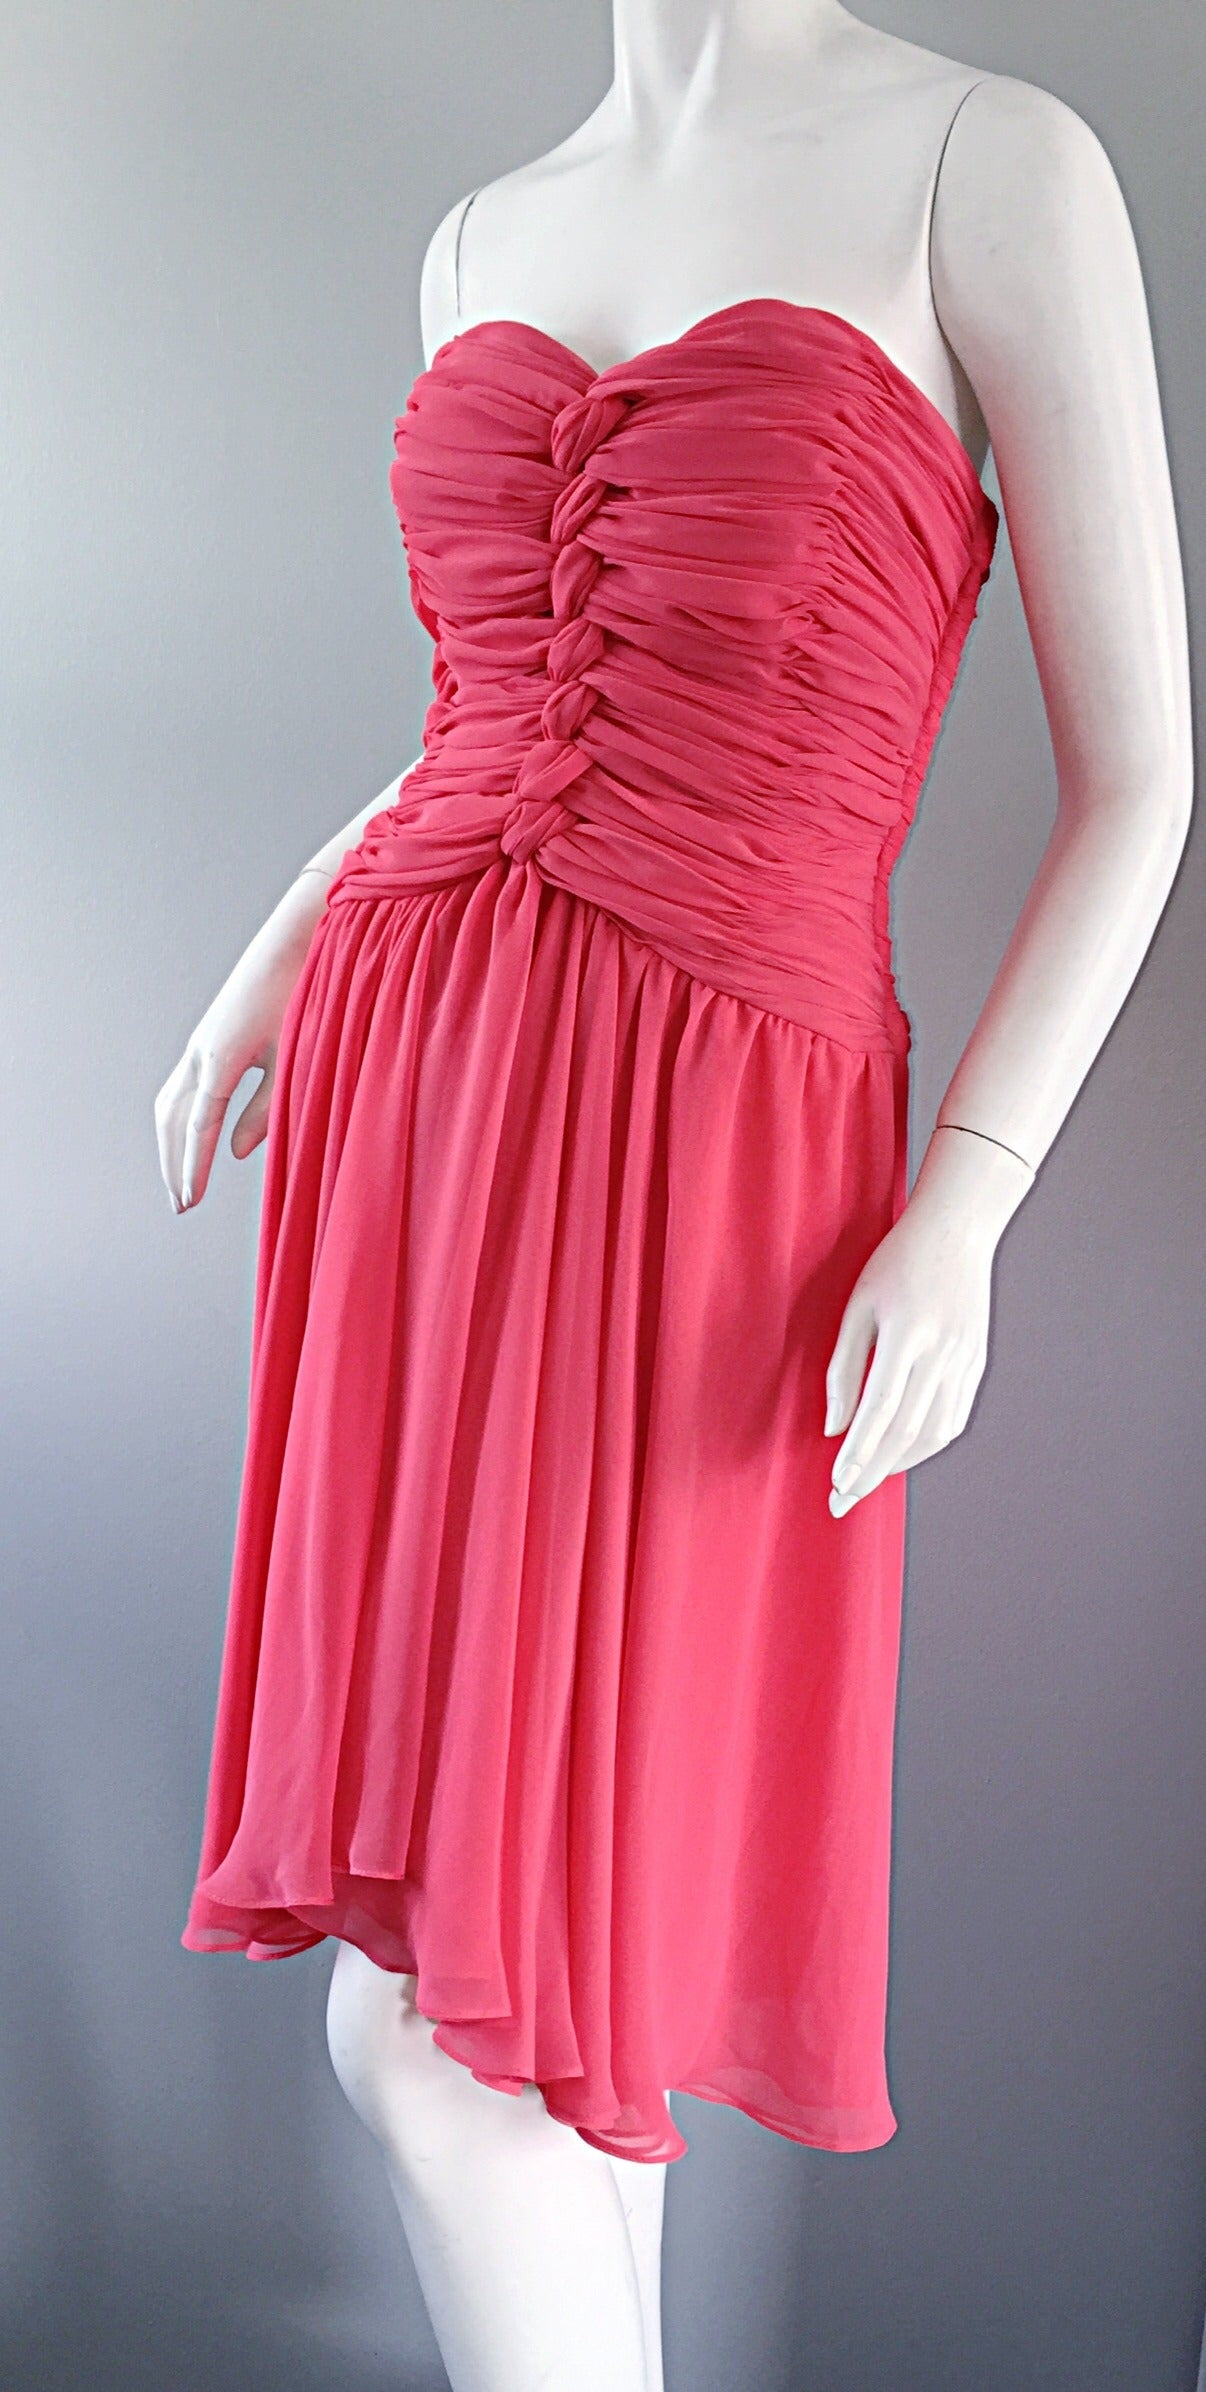 Victor Costa Coral Pink Strapless Flowy Knotted Vintage Cocktail Dress Size 8 10 8